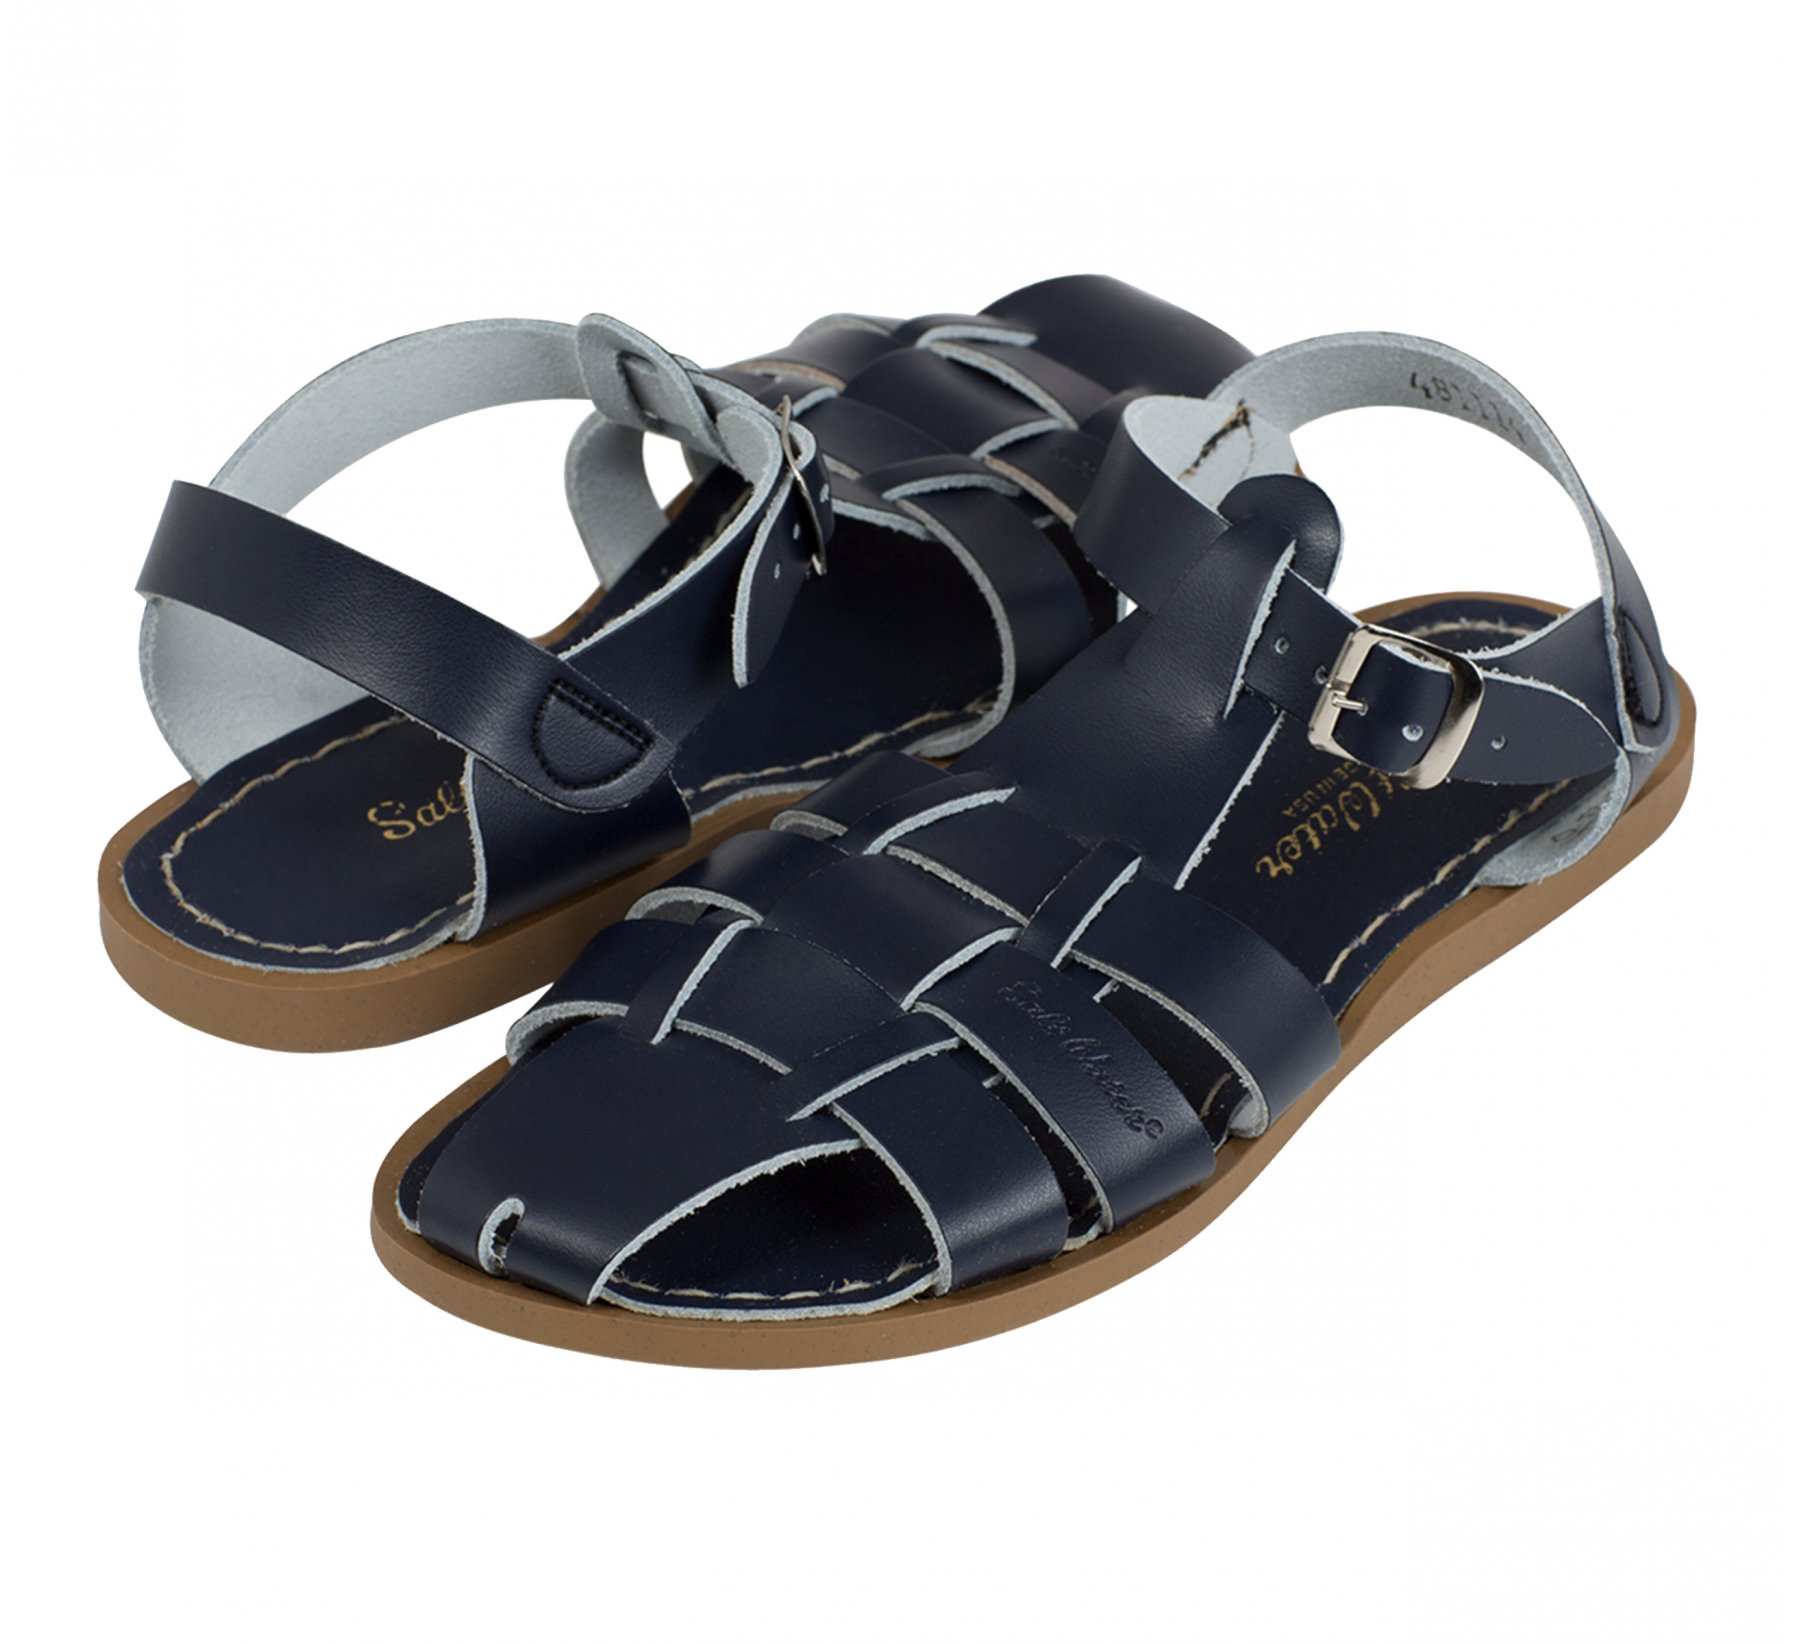 Shark Original Biru Kelasi - Salt Water Sandals